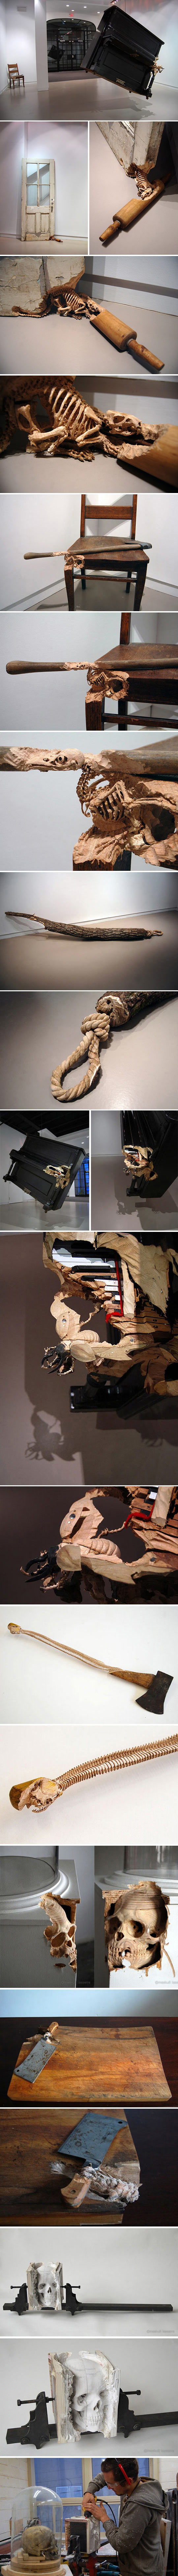 funny-Maskull-Laserre-wood-carving-sculptures-piano